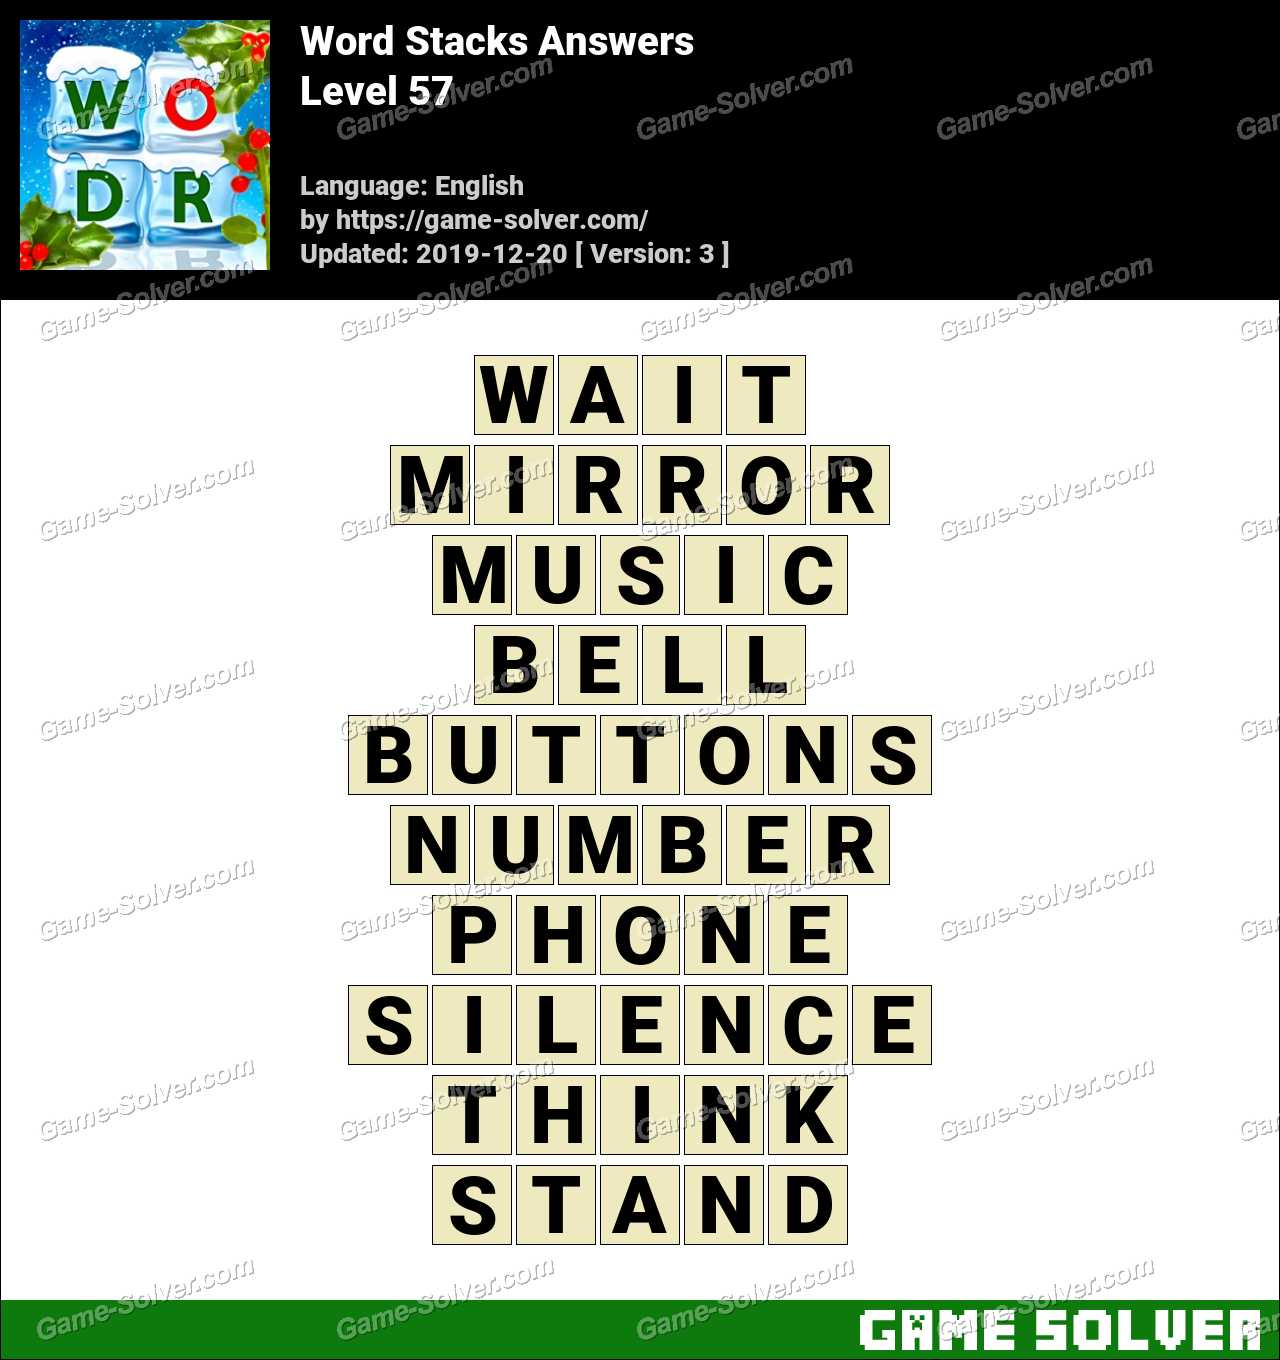 Word Stacks Level 57 Answers